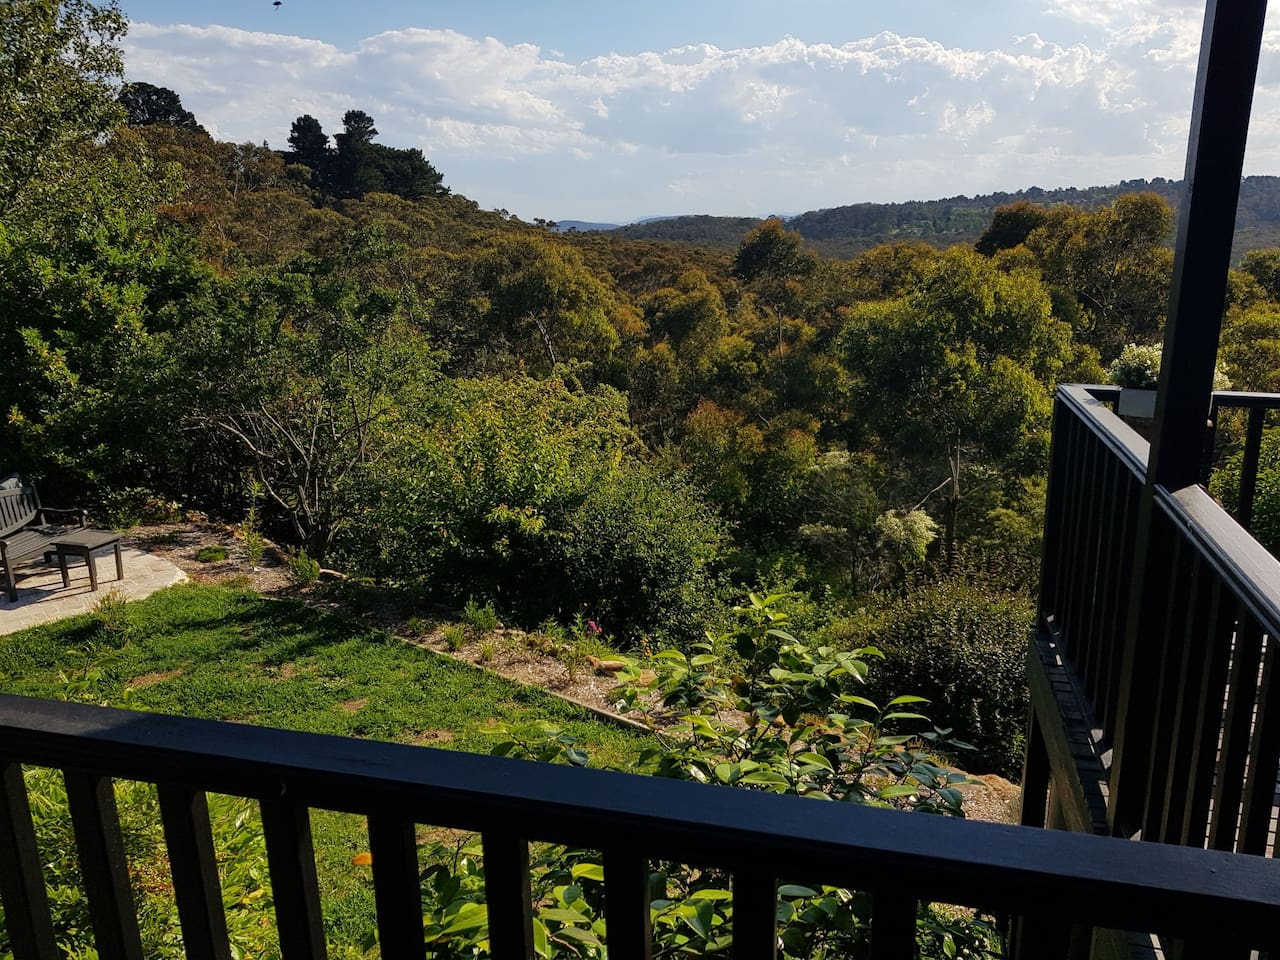 View of from back verandah of back yard which backs onto national park